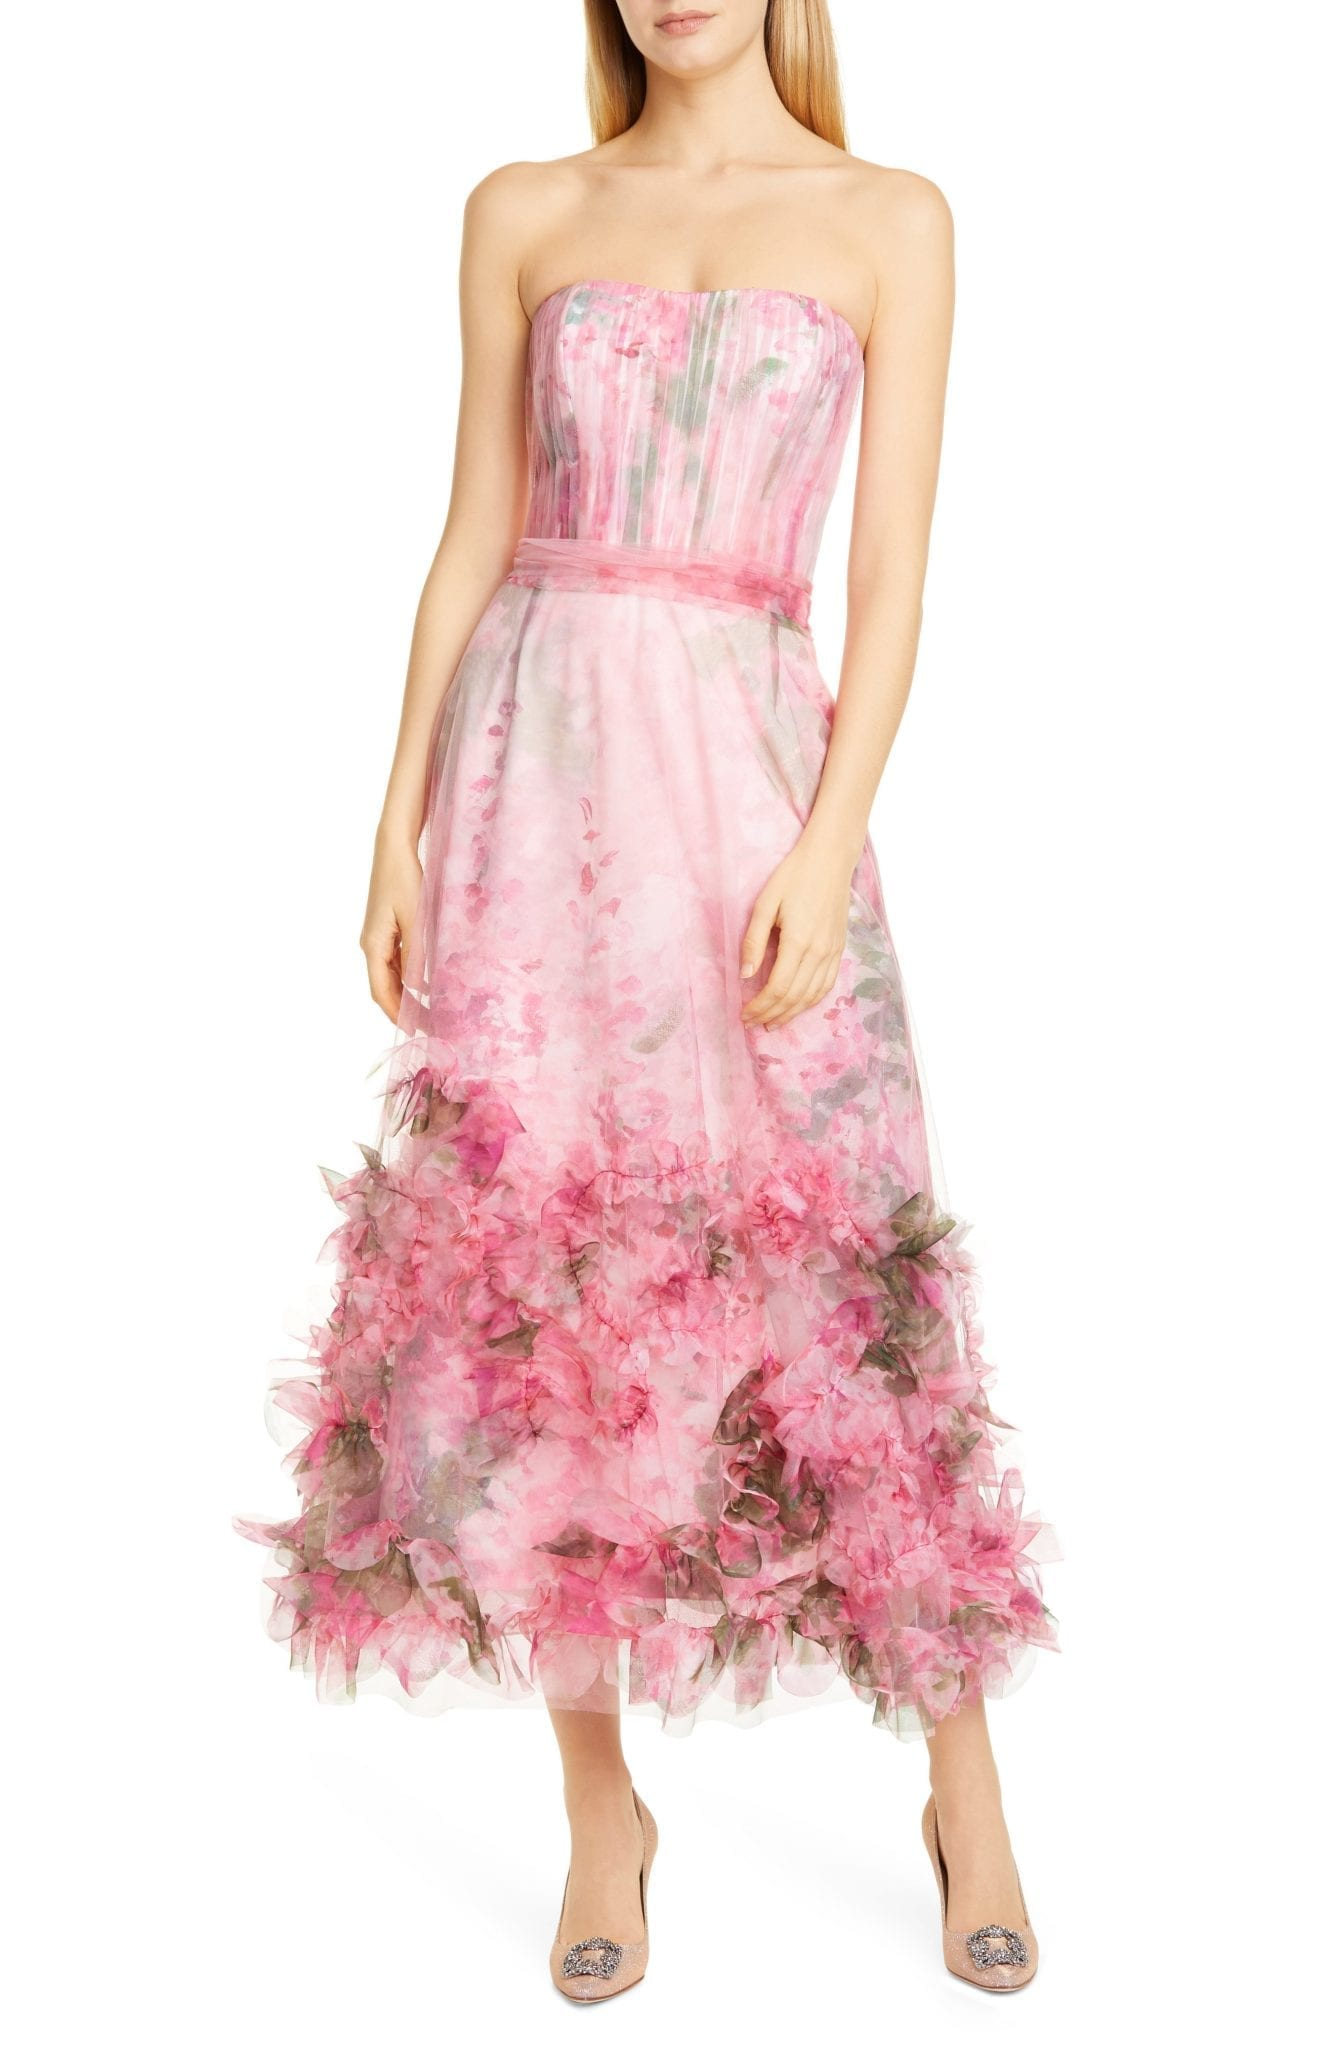 MARCHESA NOTTE Floral Appliqué Strapless Dress